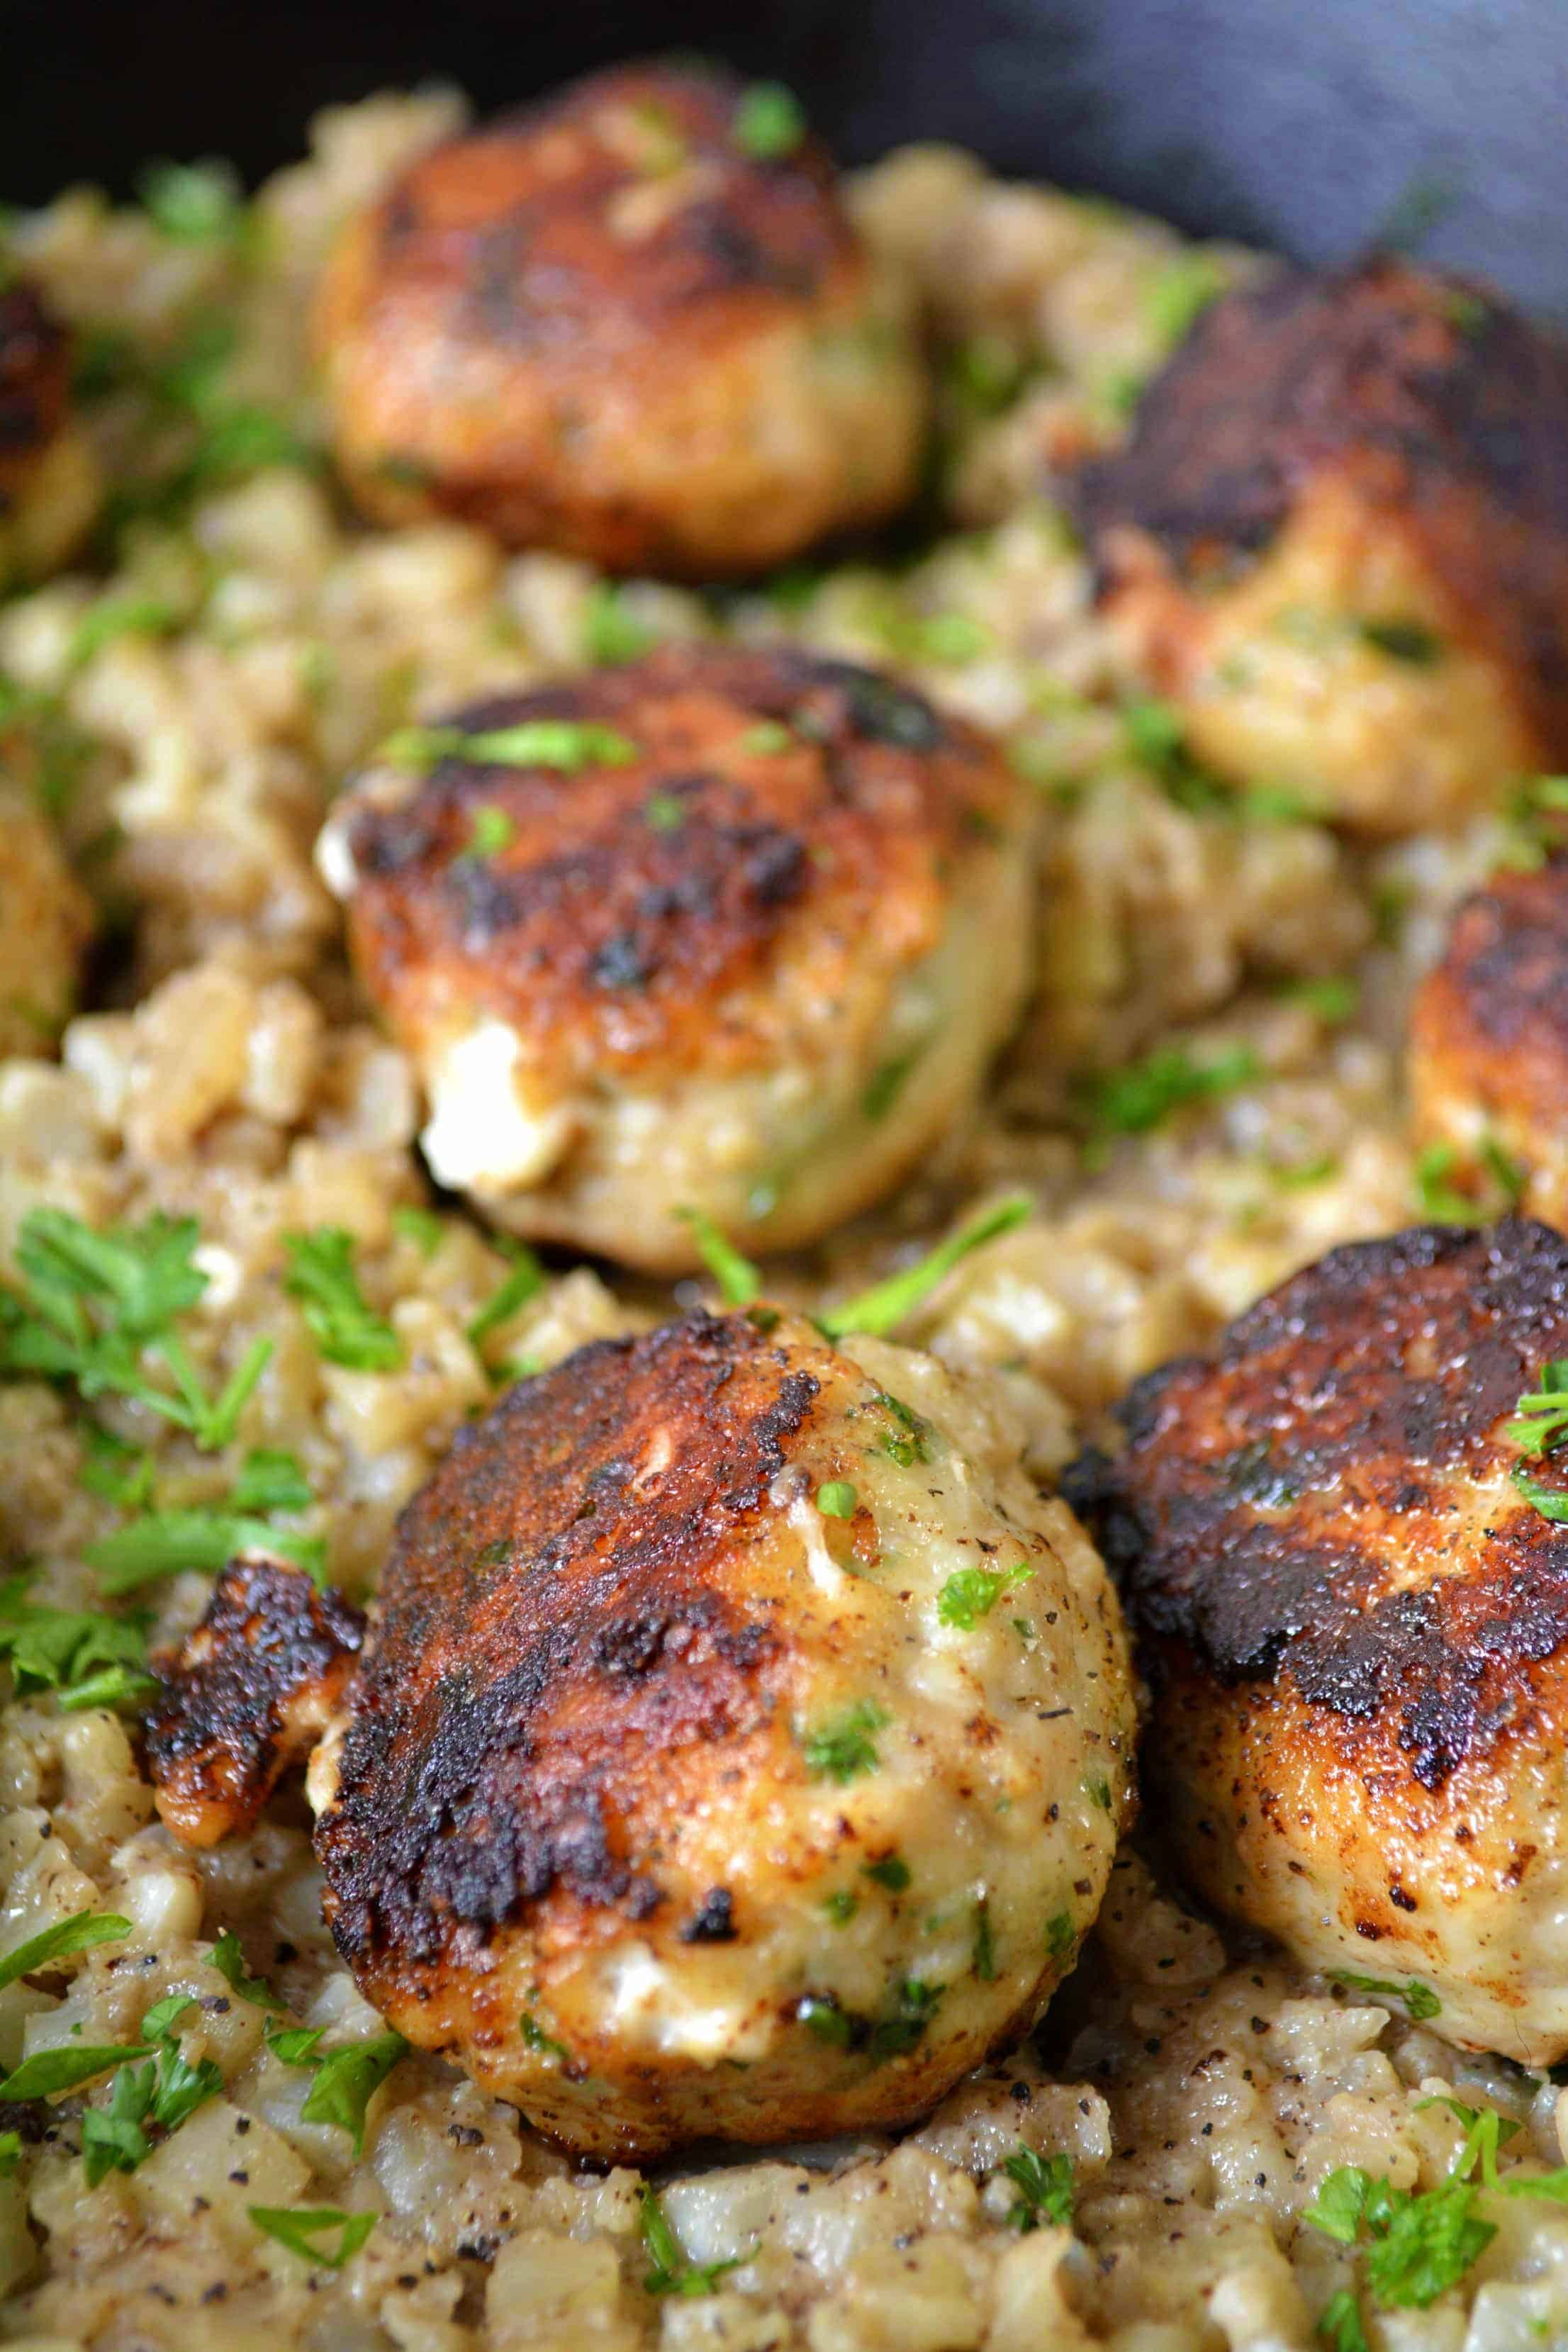 Cheesy Stuffed Turkey Meatballs with Cauliflower Rice